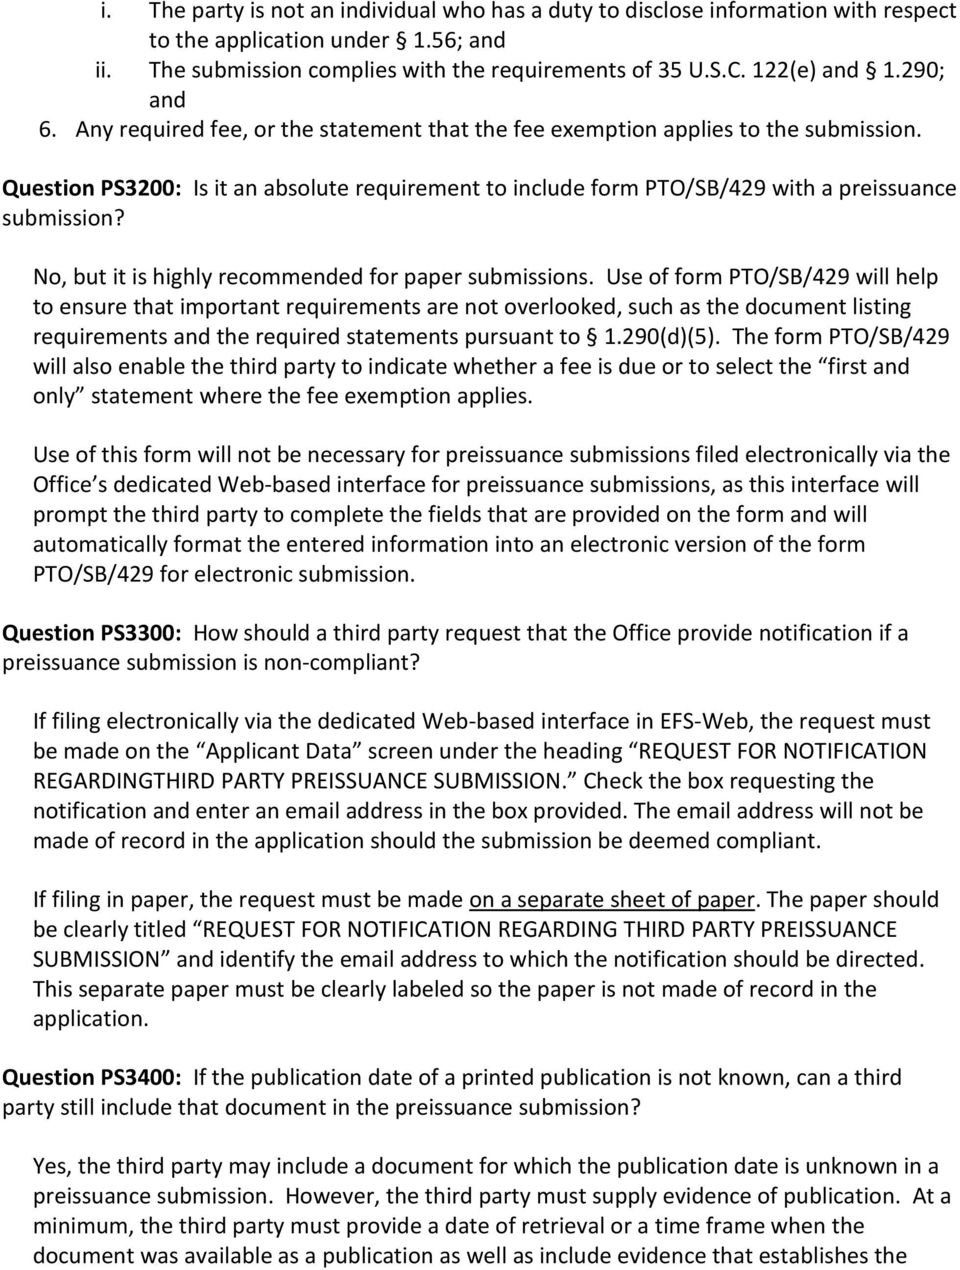 Question PS3200: Is it an absolute requirement to include form PTO/SB/429 with a preissuance submission? No, but it is highly recommended for paper submissions.